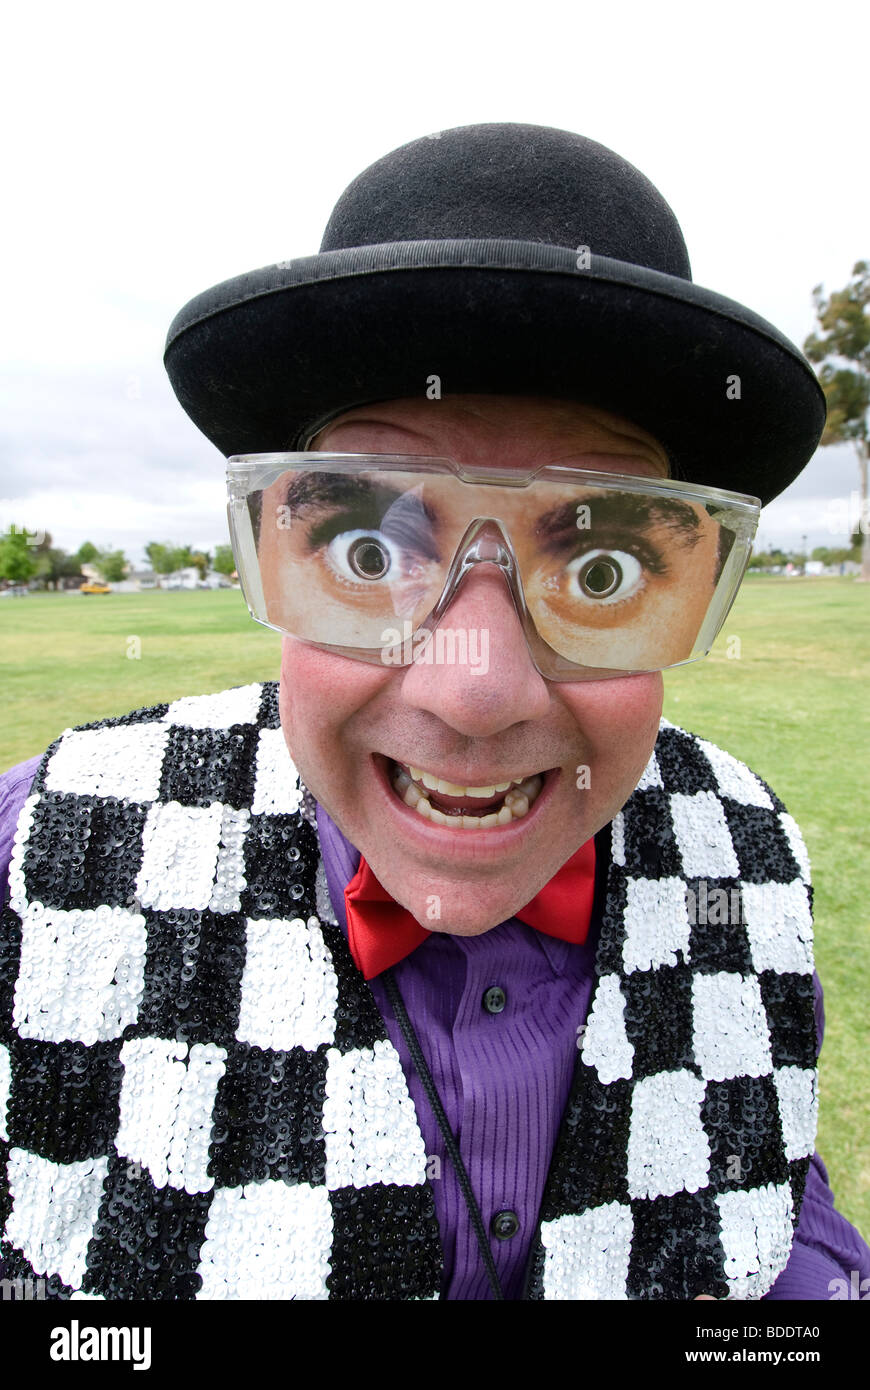 A magician entertainer with fake eyeglasses smiles into the camera. - Stock Image